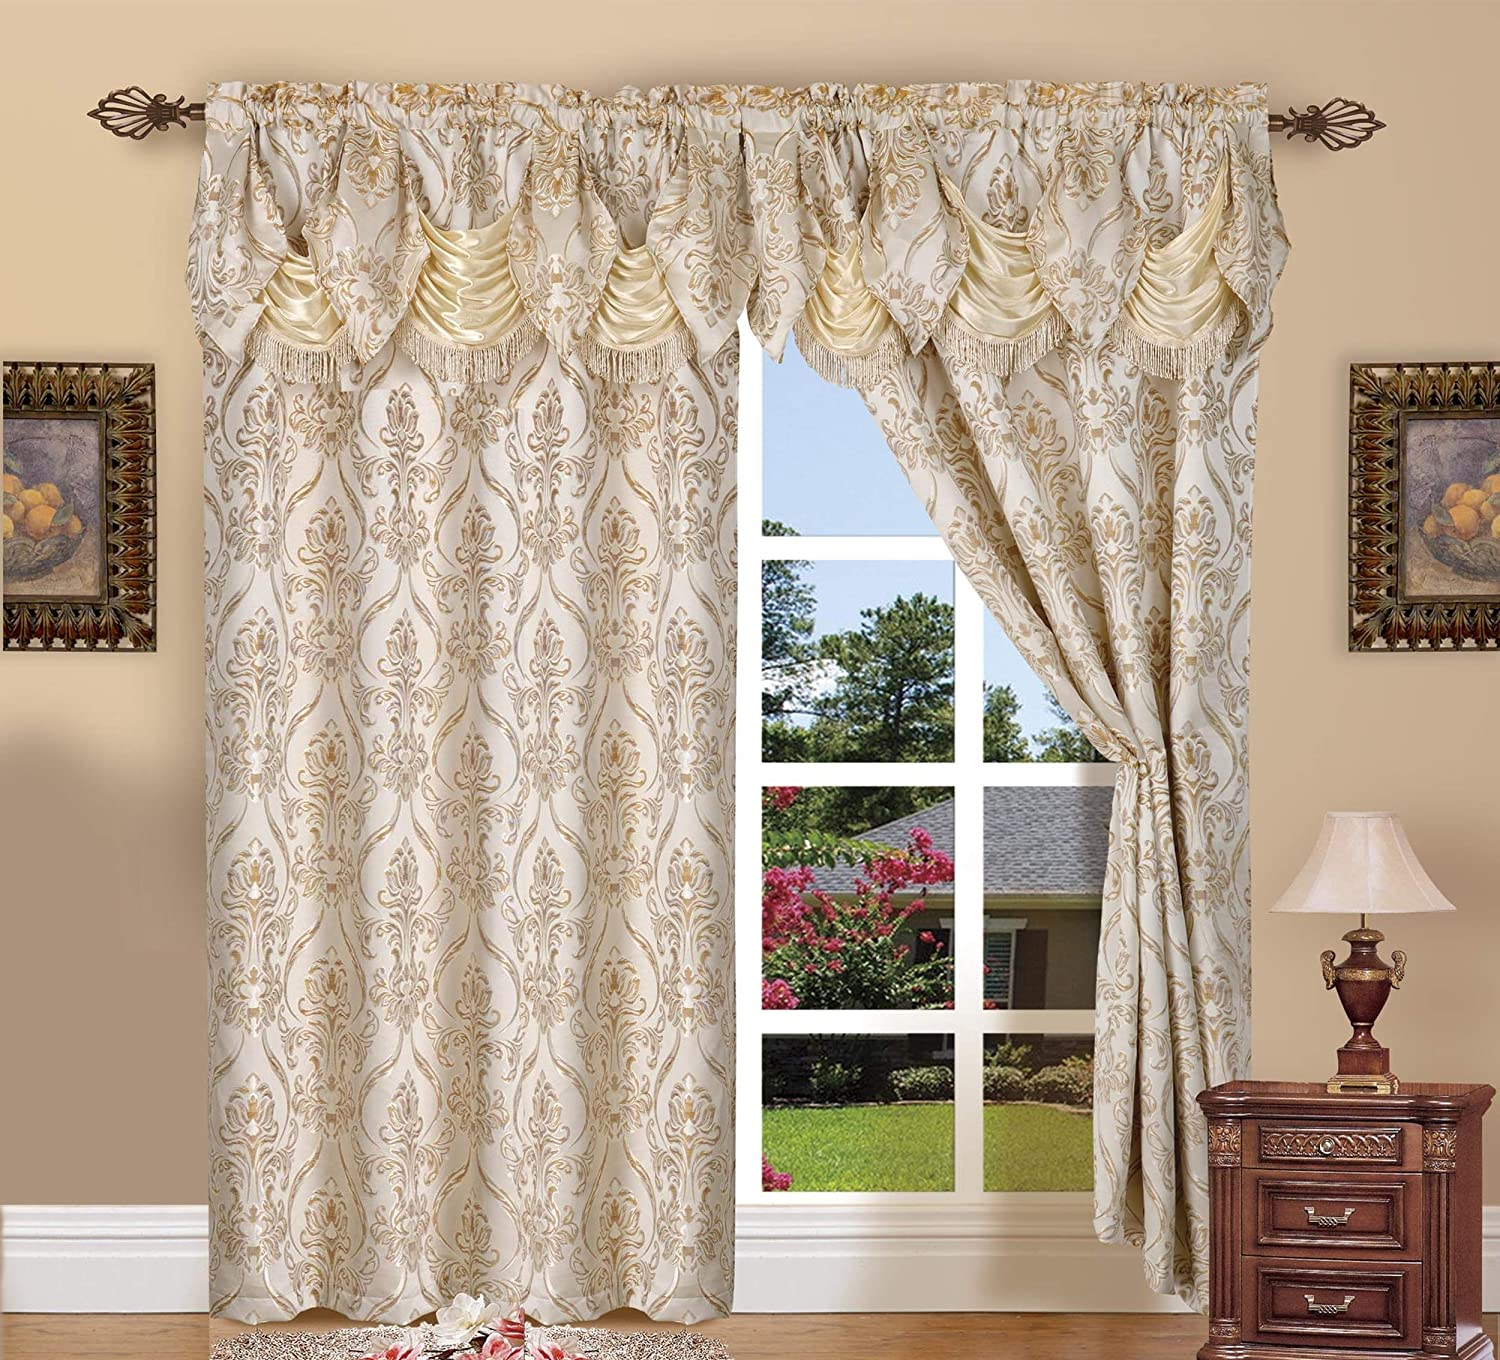 Elegant Comfort Penelopie Jacquard Look Curtain Panel Set with Attached Waterfall Valance, Set of 2 54x84 Inches Beige